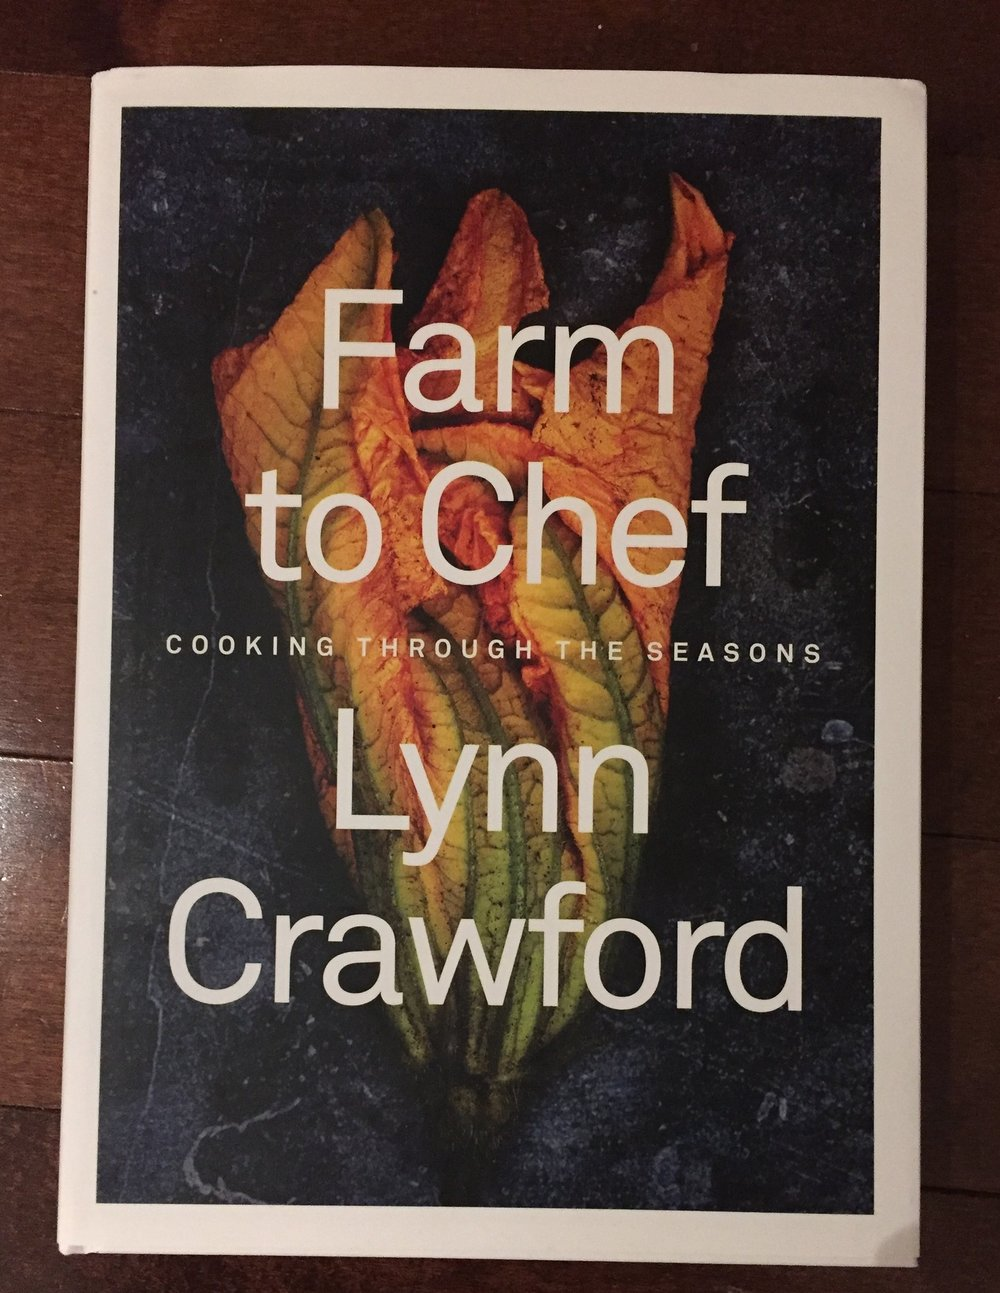 Farm to Chef. This book is a guide to cooking in each season, specifically in Canada. This book is written by Lynn Crawford a Canadian Chef. Sometimes it's exciting having fresh seasonal produce, but it's hard to know what to make with those ingredients. This book is an excellent guide to all things seasonal.